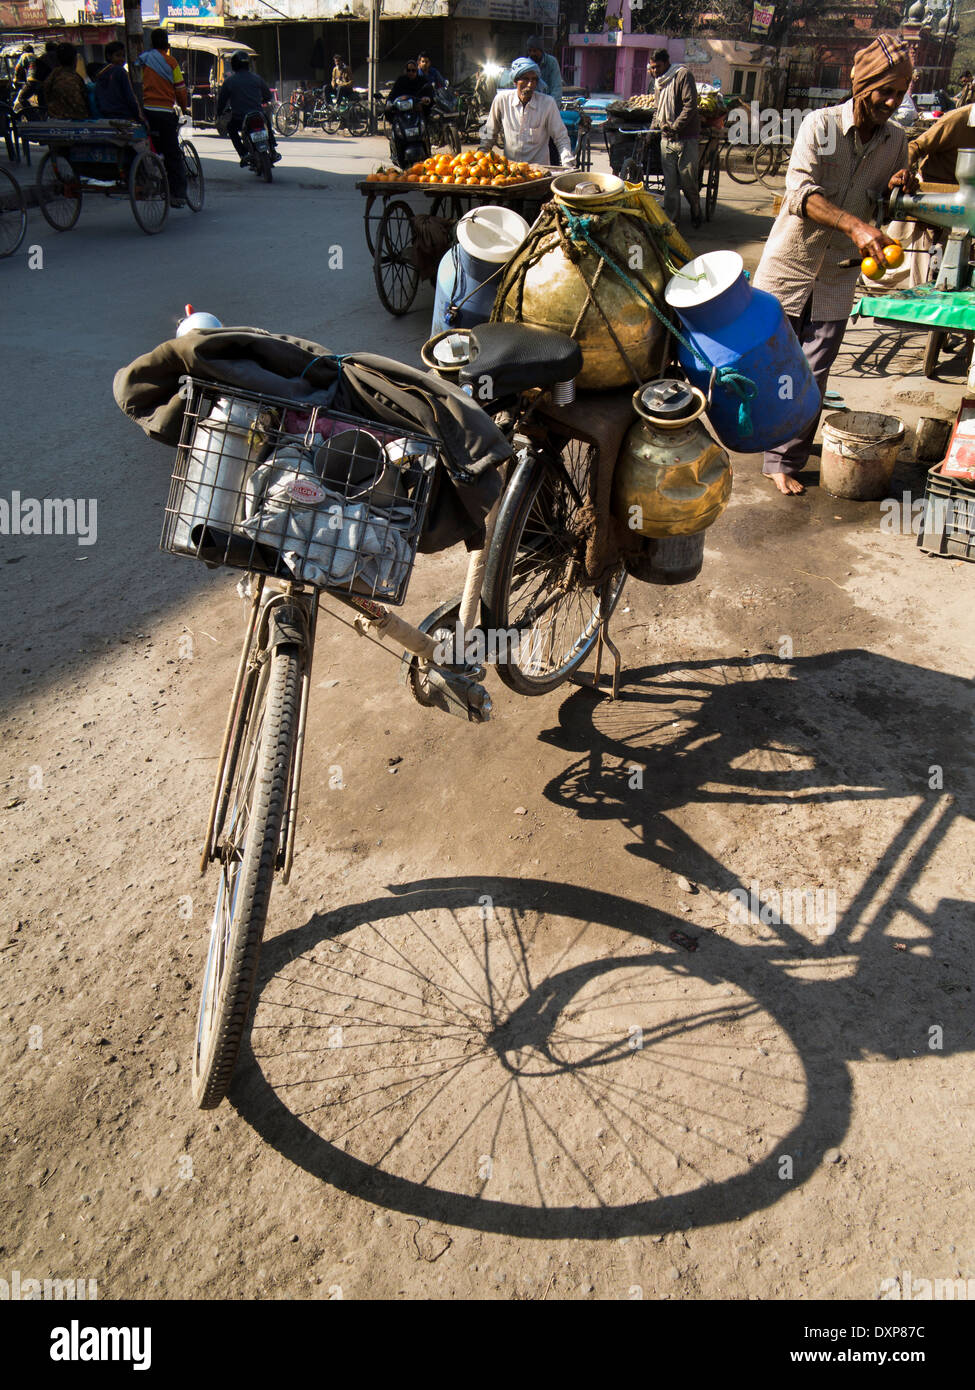 India, Punjab, Amritsar Katra Ahluwalia, Dudh Wallah, delivery bicycle loaded with milk - Stock Image